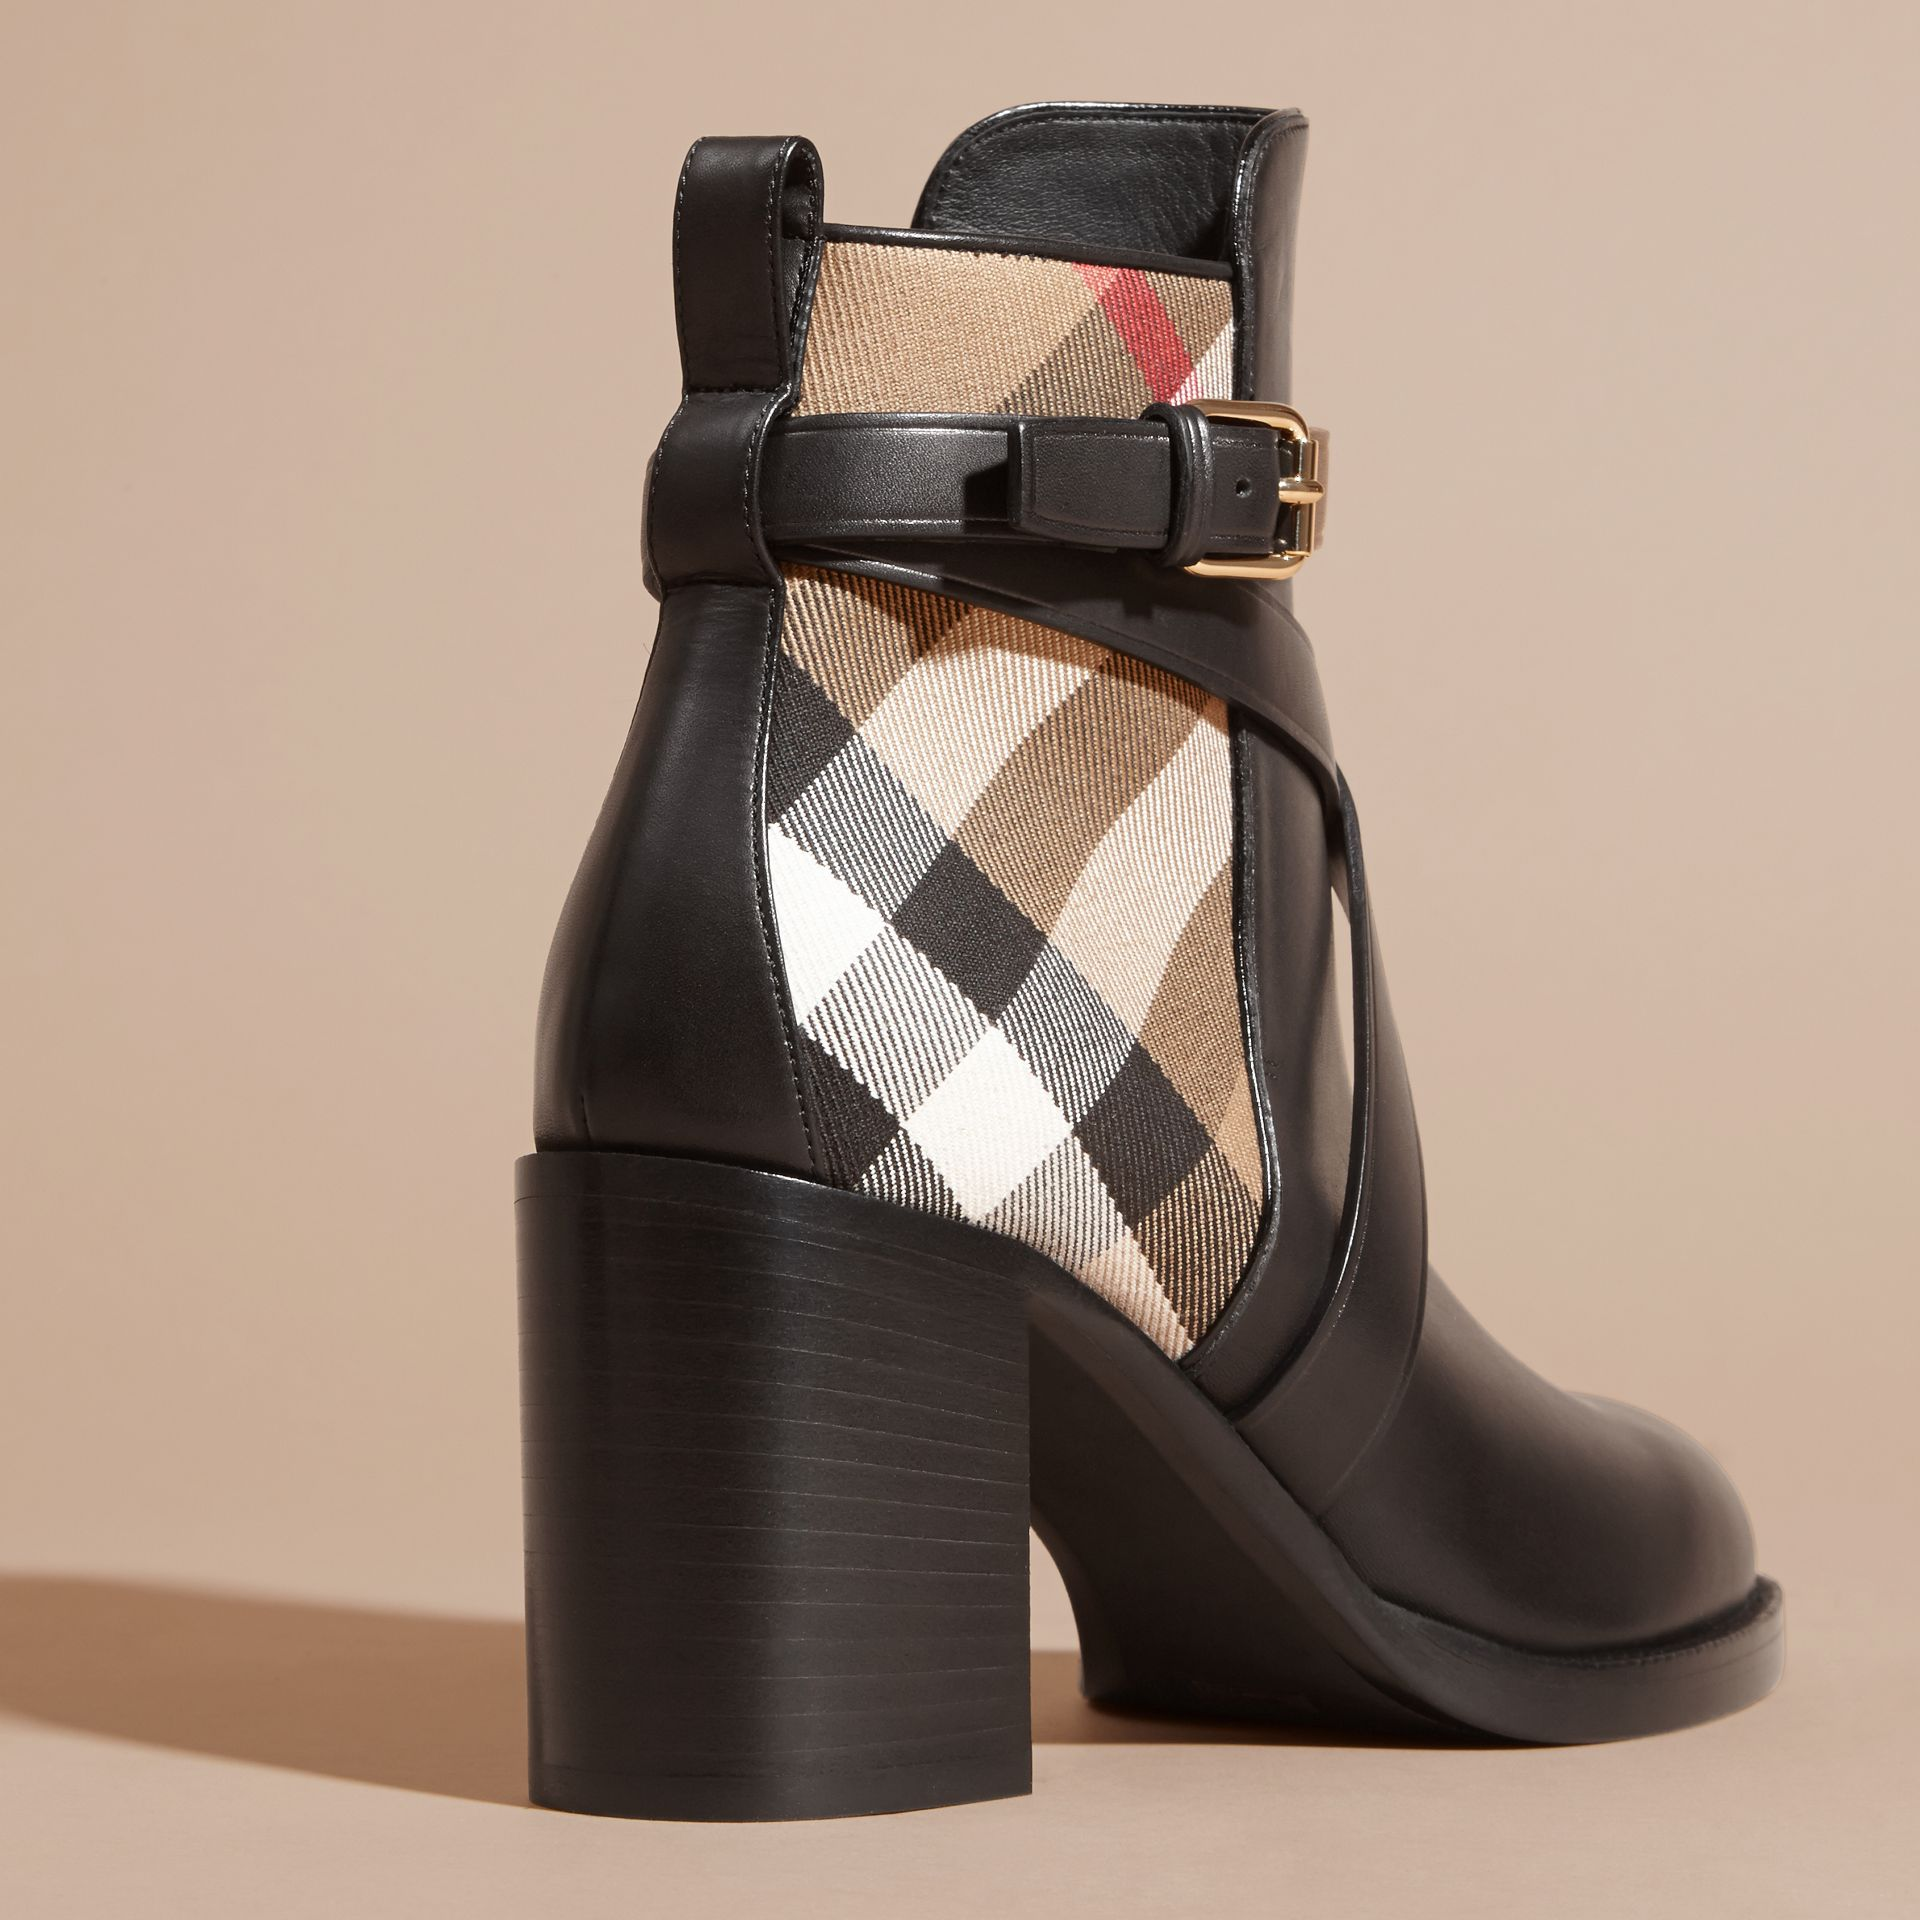 House Check and Leather Ankle Boots in Black - Women | Burberry United Kingdom - gallery image 4